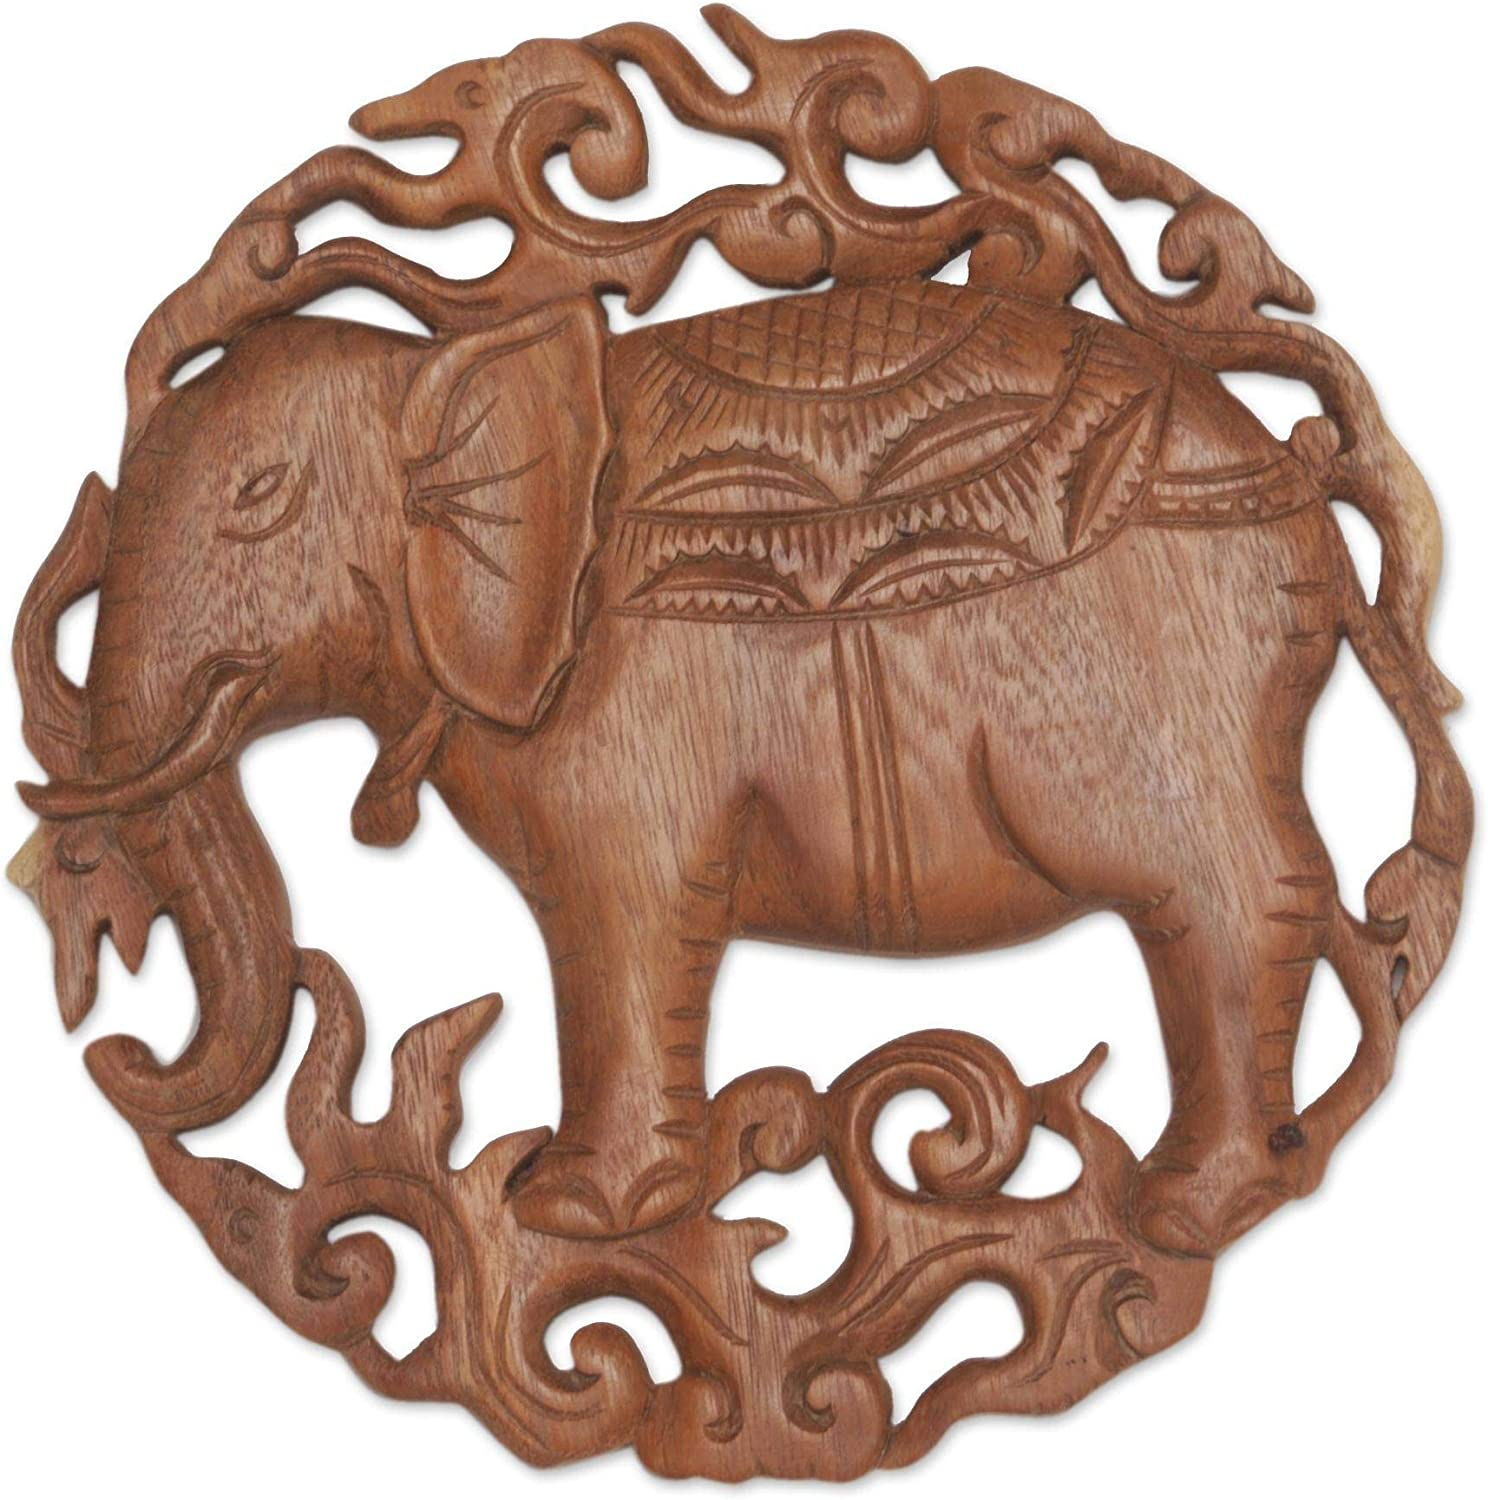 NOVICA Handcrafted Wood Elephant Wall Sculpture, Brown 'Palace Elephant'